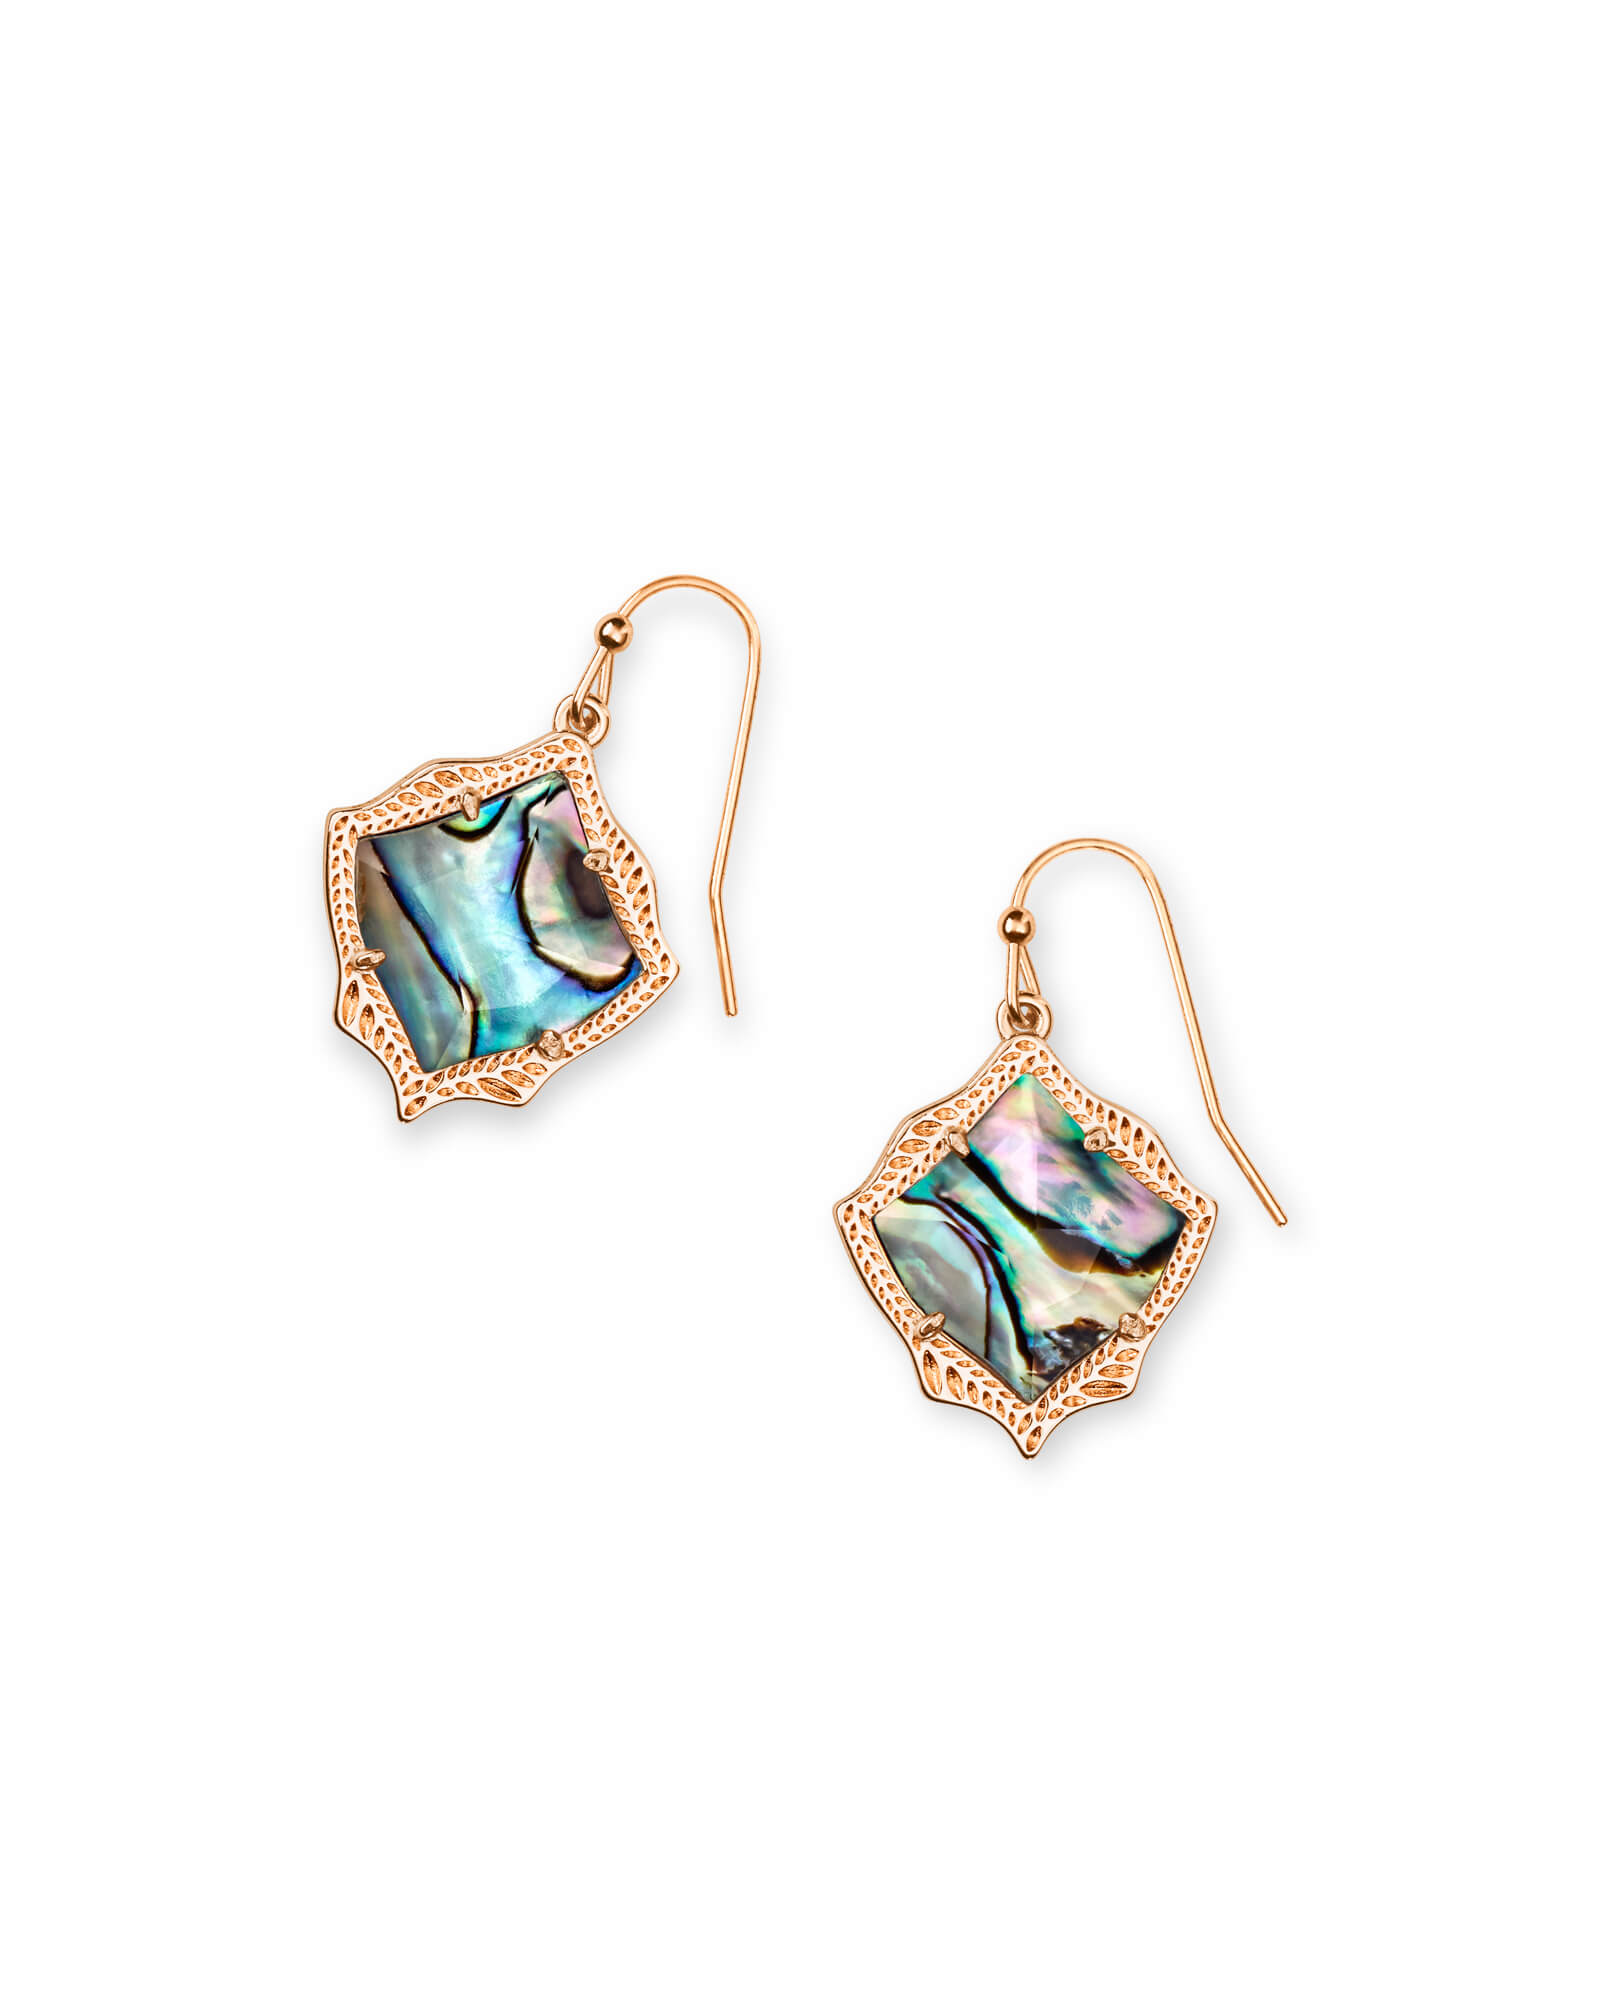 Kyrie Rose Gold Drop Earrings in Abalone Shell